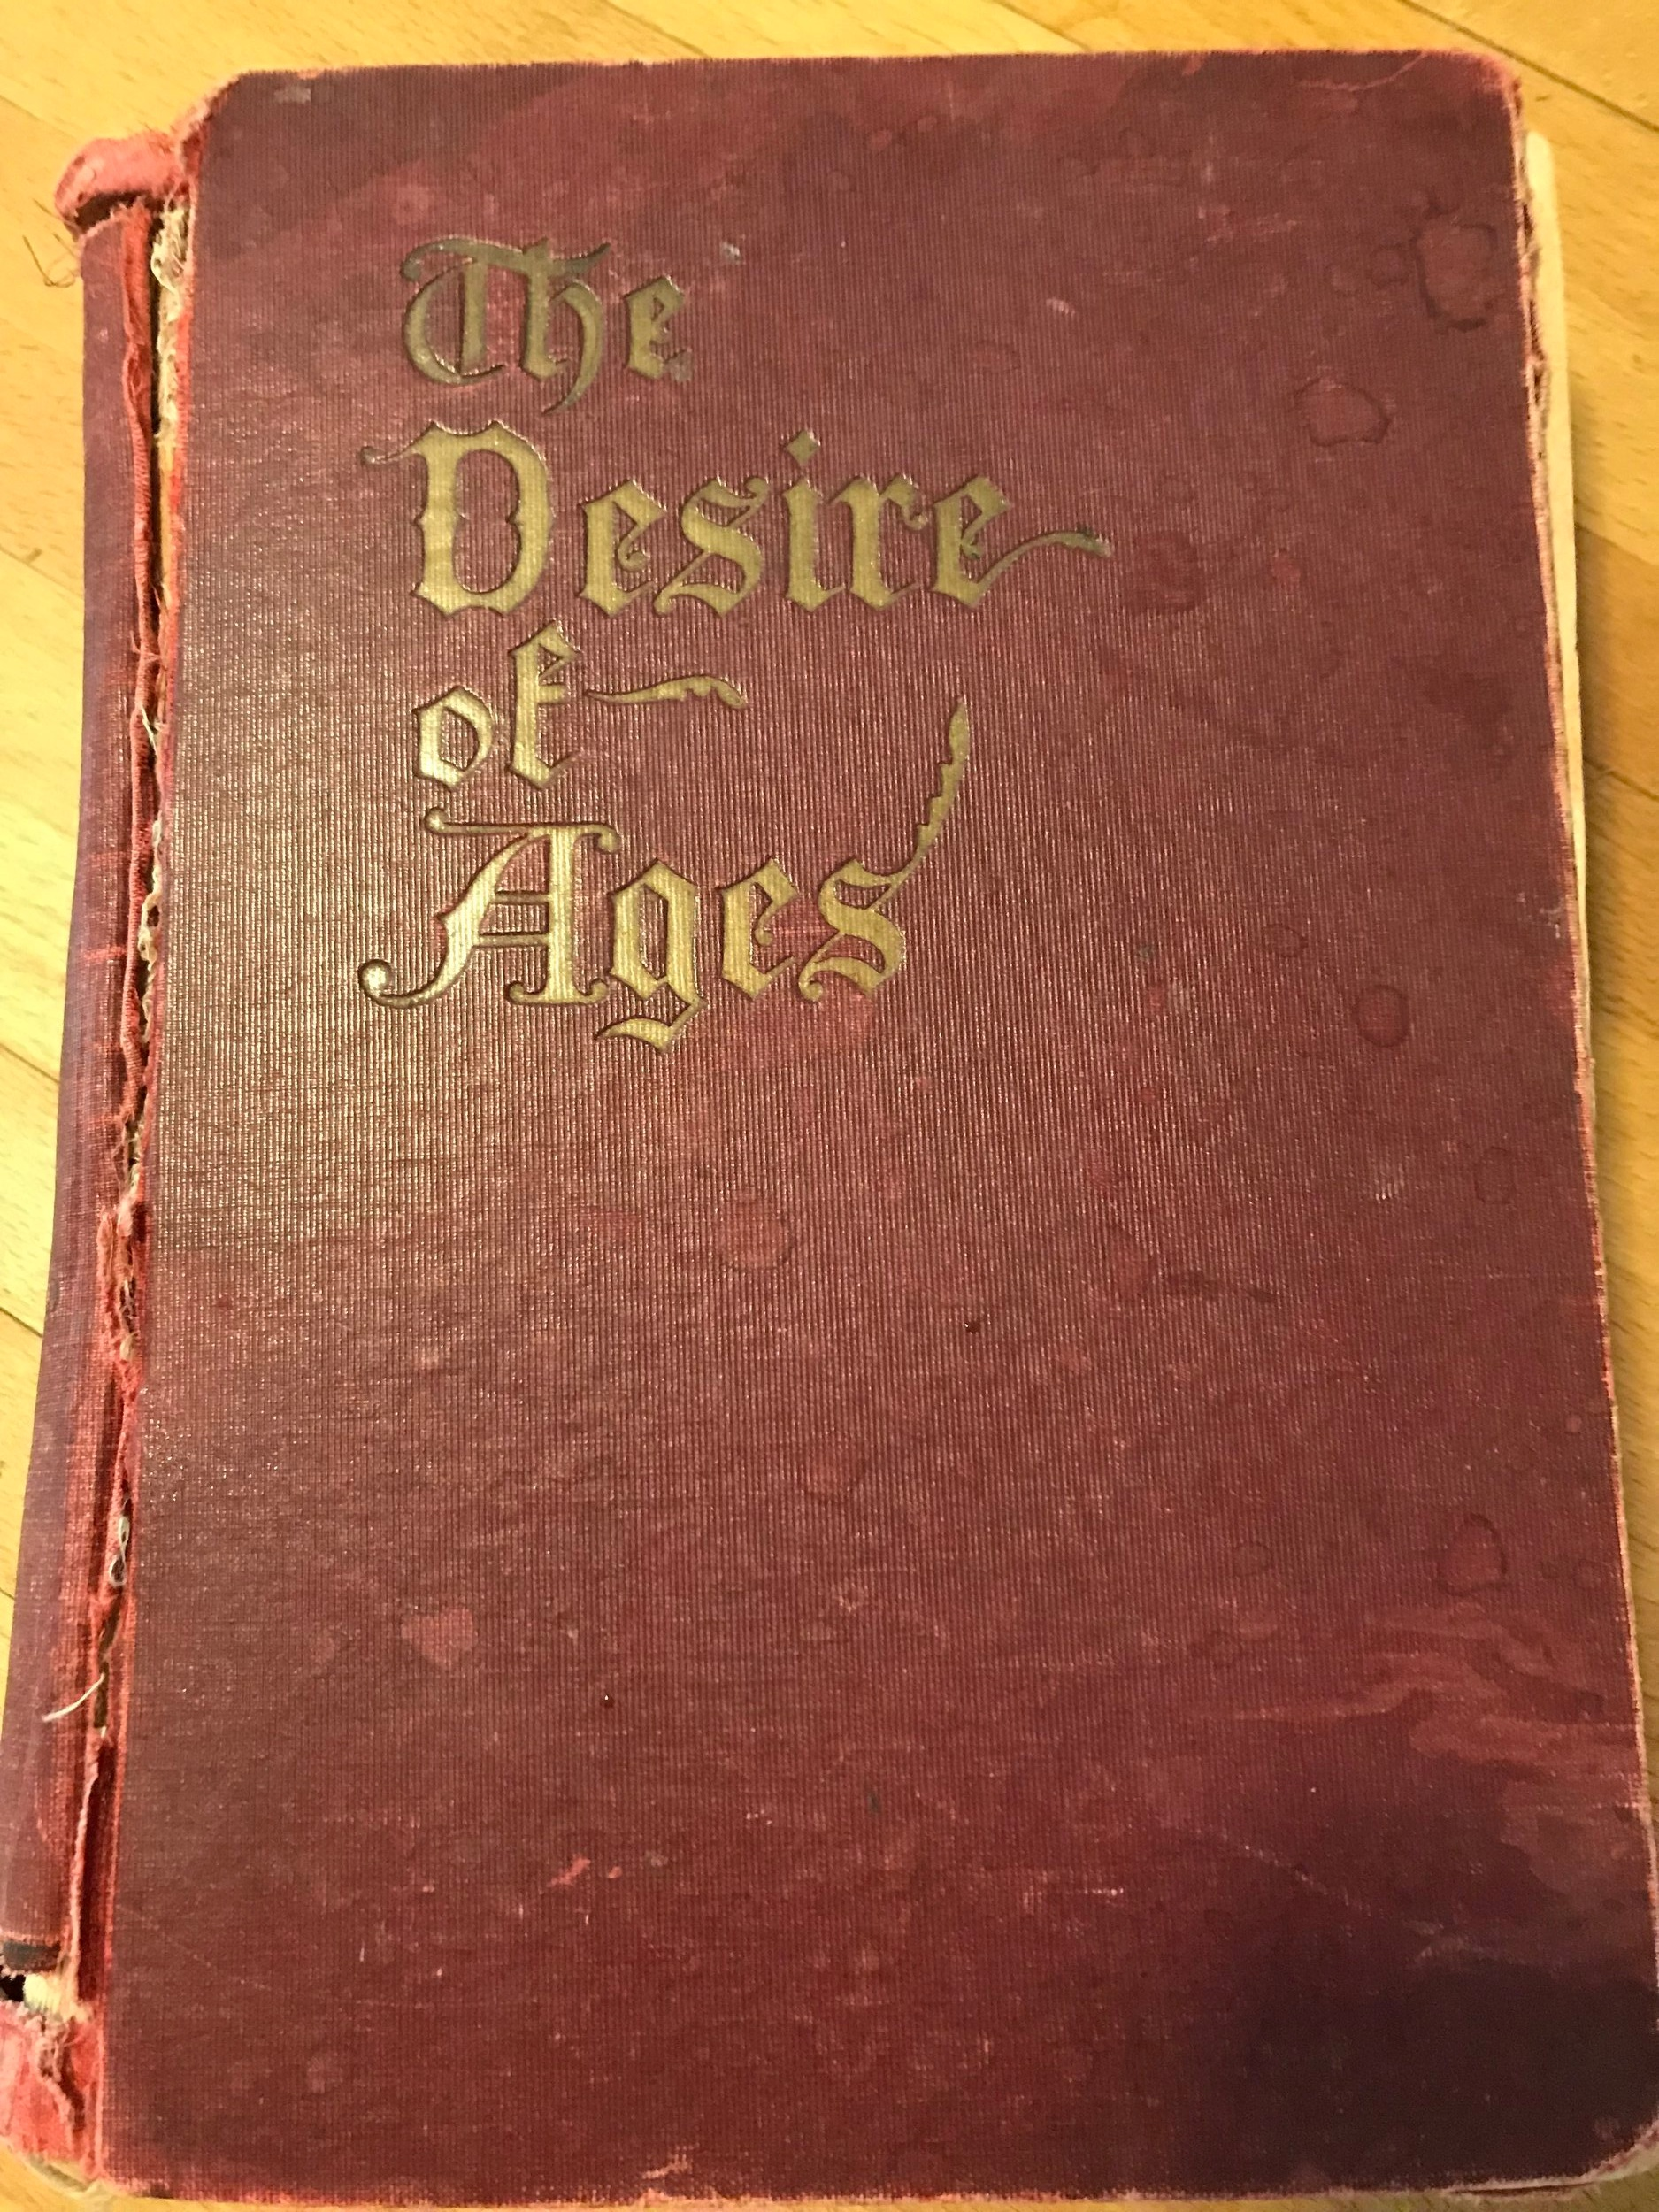 The Desire of Ages, 1898 (personal copy), cover